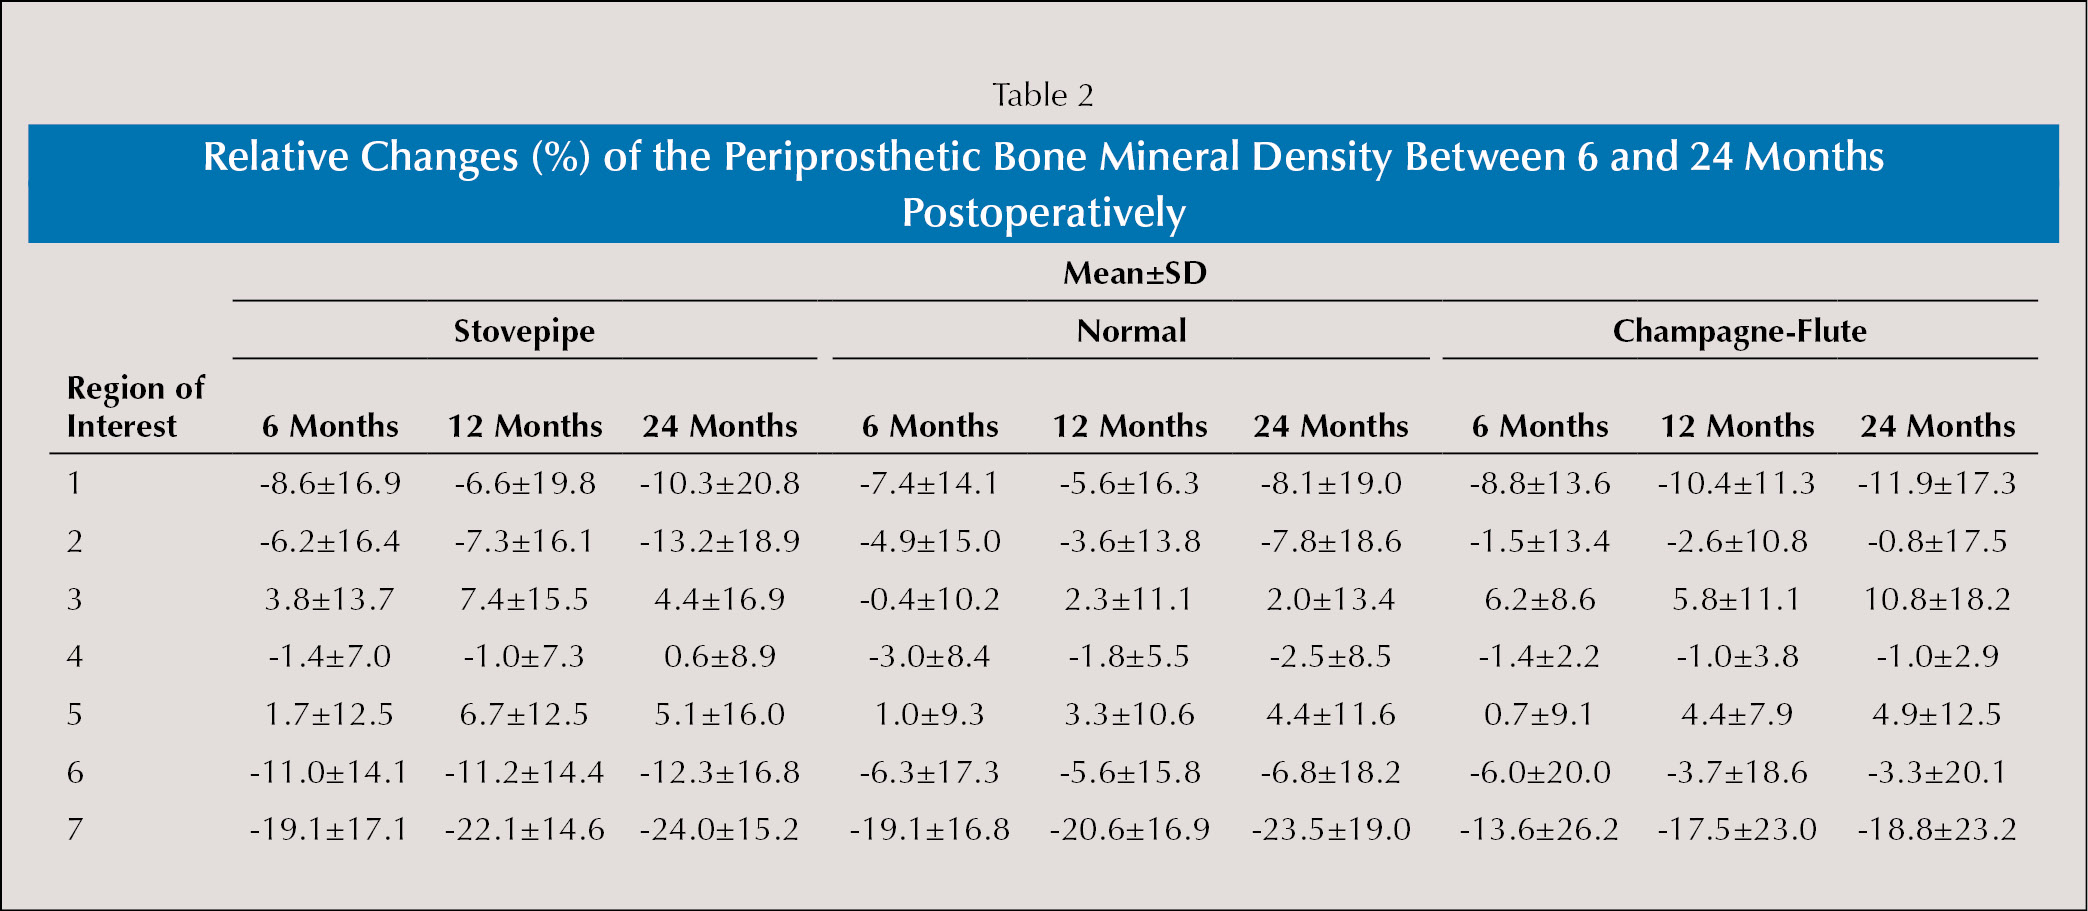 Relative Changes (%) of the Periprosthetic Bone Mineral Density Between 6 and 24 Months Postoperatively